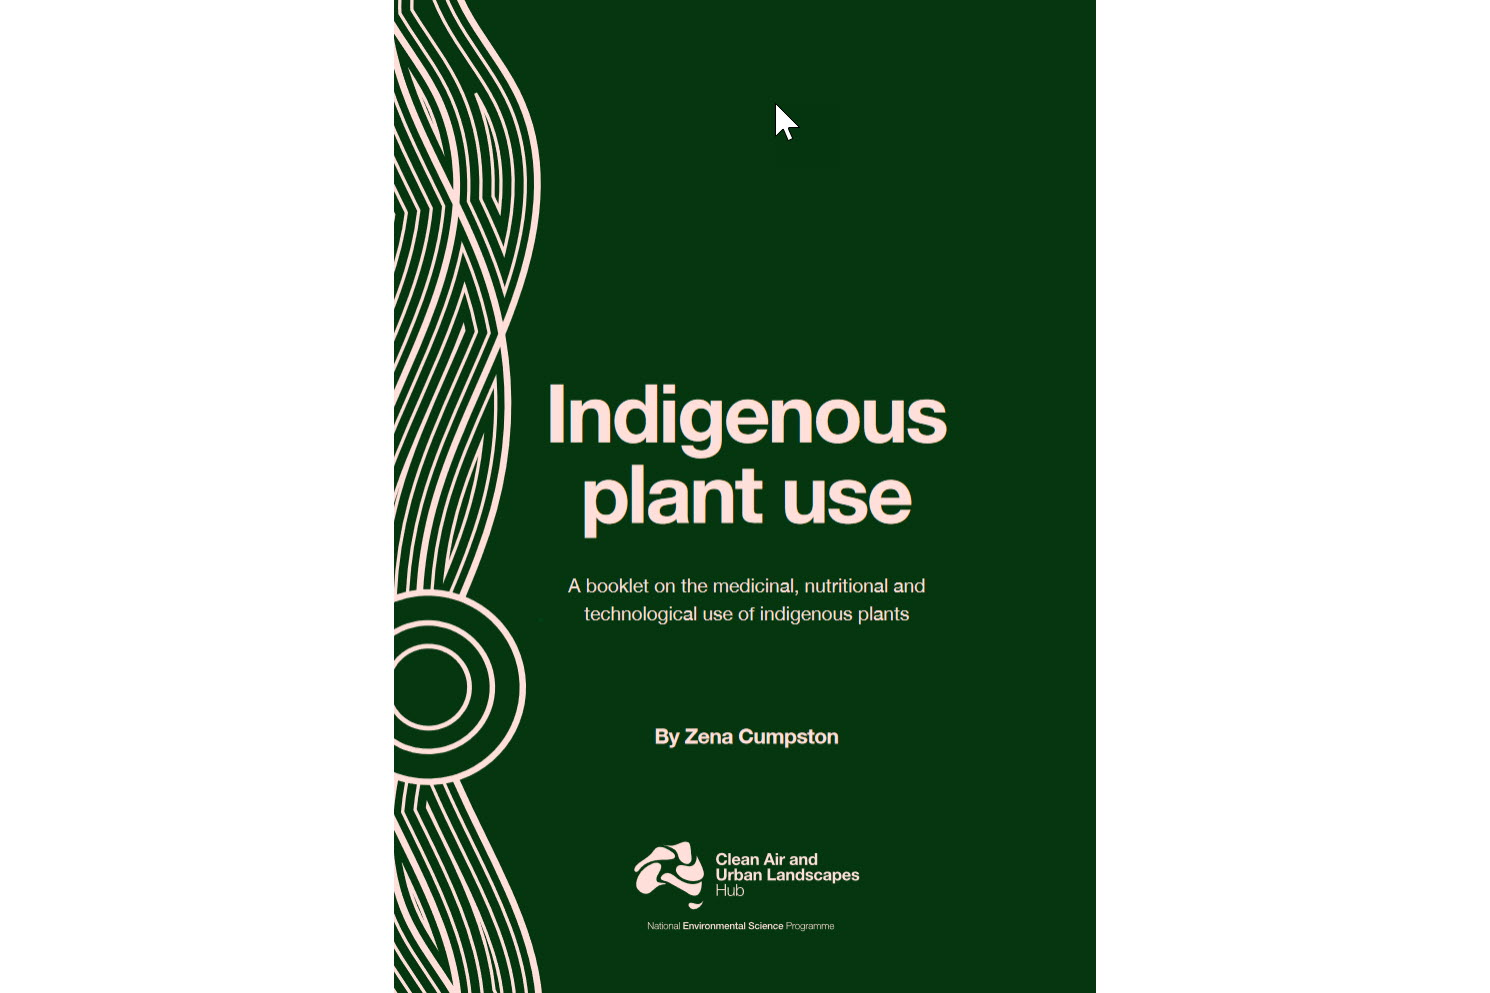 Indigenous plant use: A booklet on the medicinal, nutritional and technological use of indigenous plants Book Cover